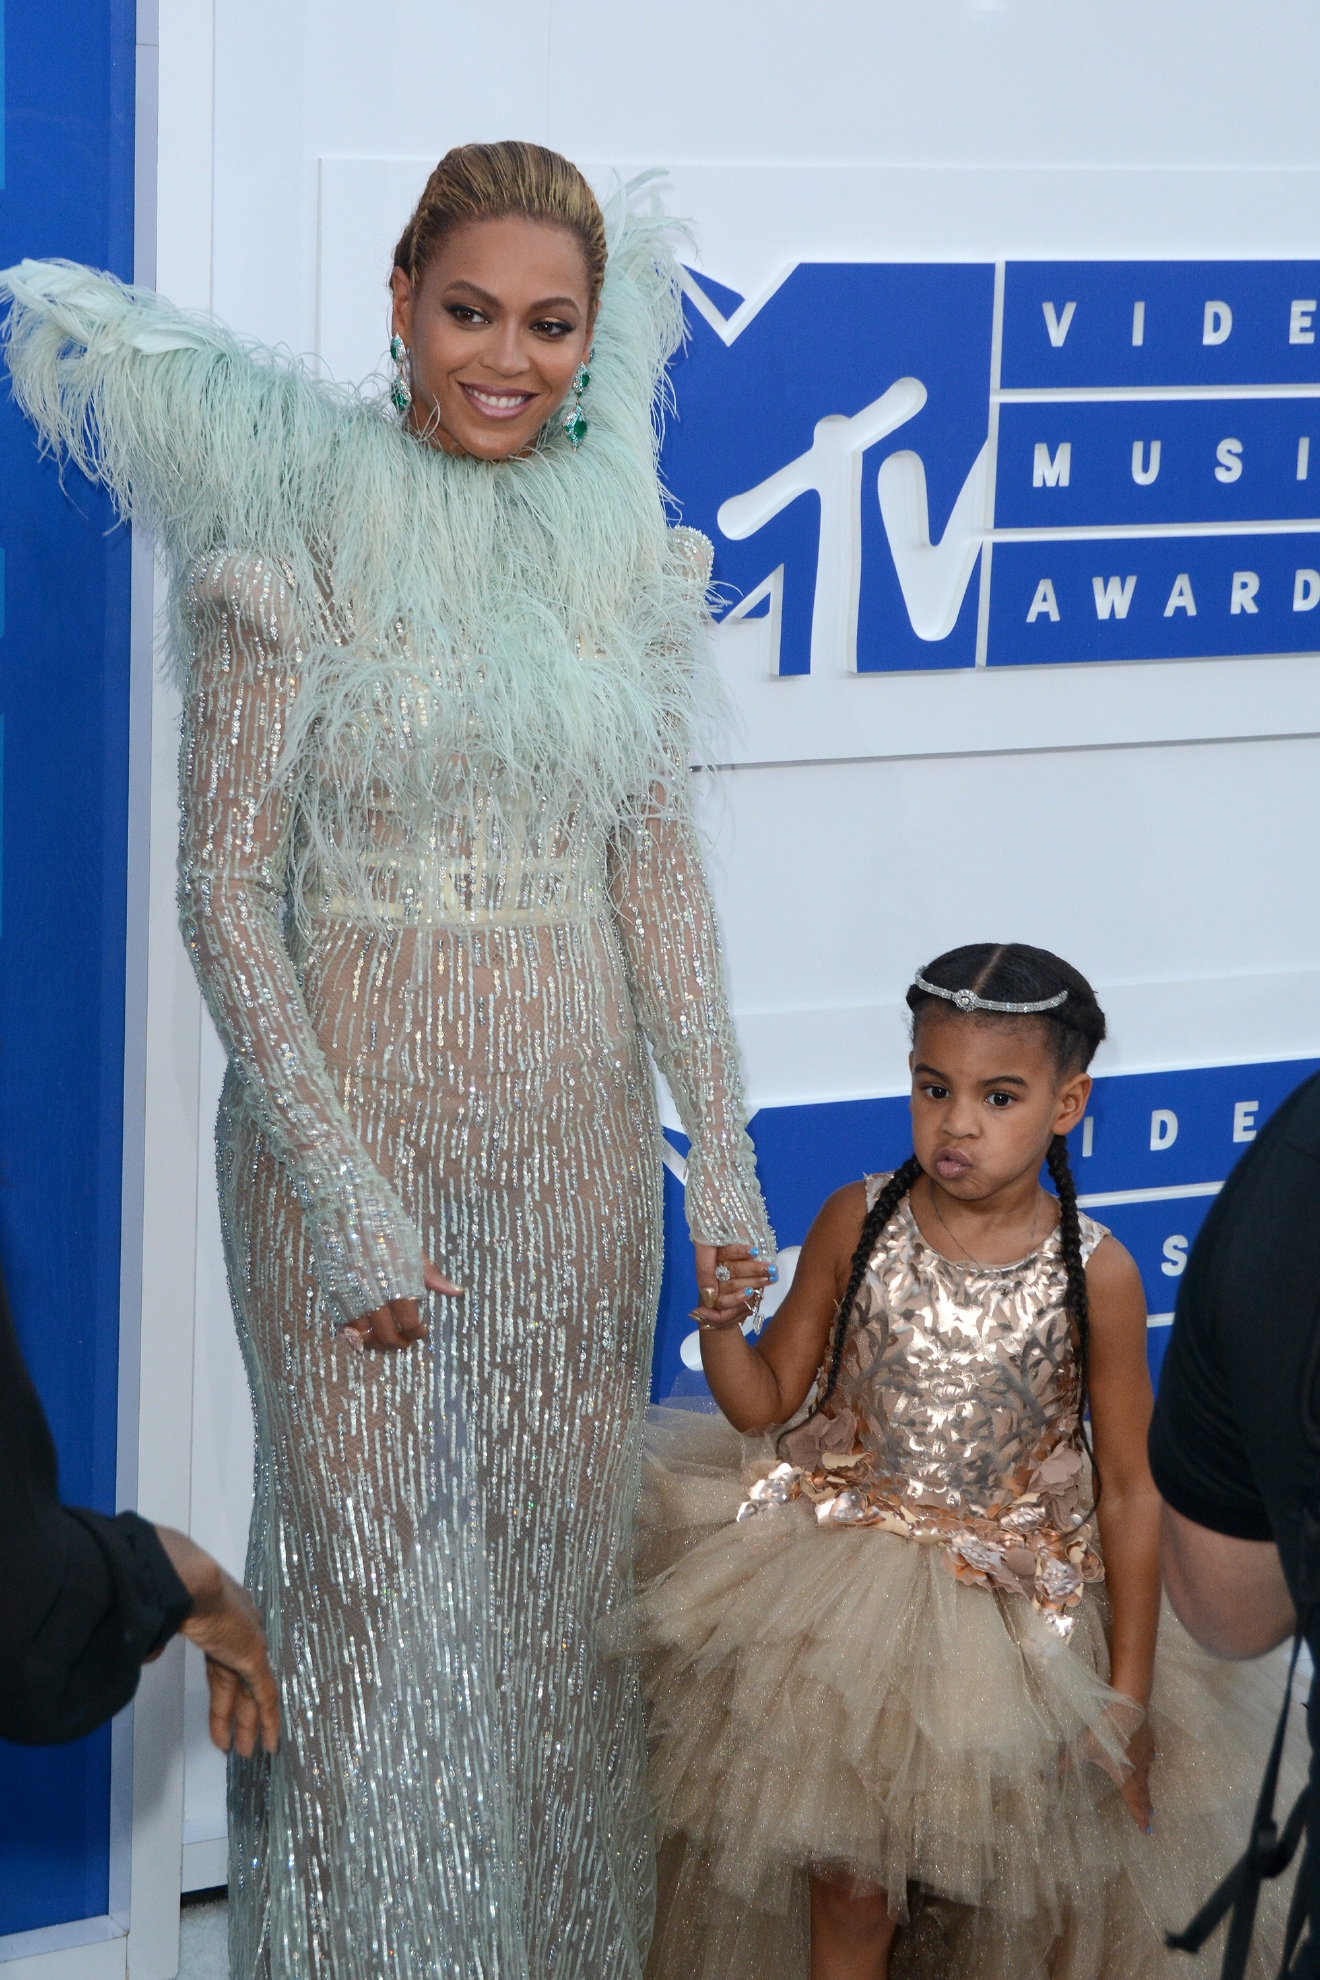 2016 MTV Video Music Awards - Red Carpet Arrivals  Featuring: Beyonce, Blue Ivy Carter Where: New York, New York, United States When: 29 Aug 2016 Credit: Ivan Nikolov/WENN.com